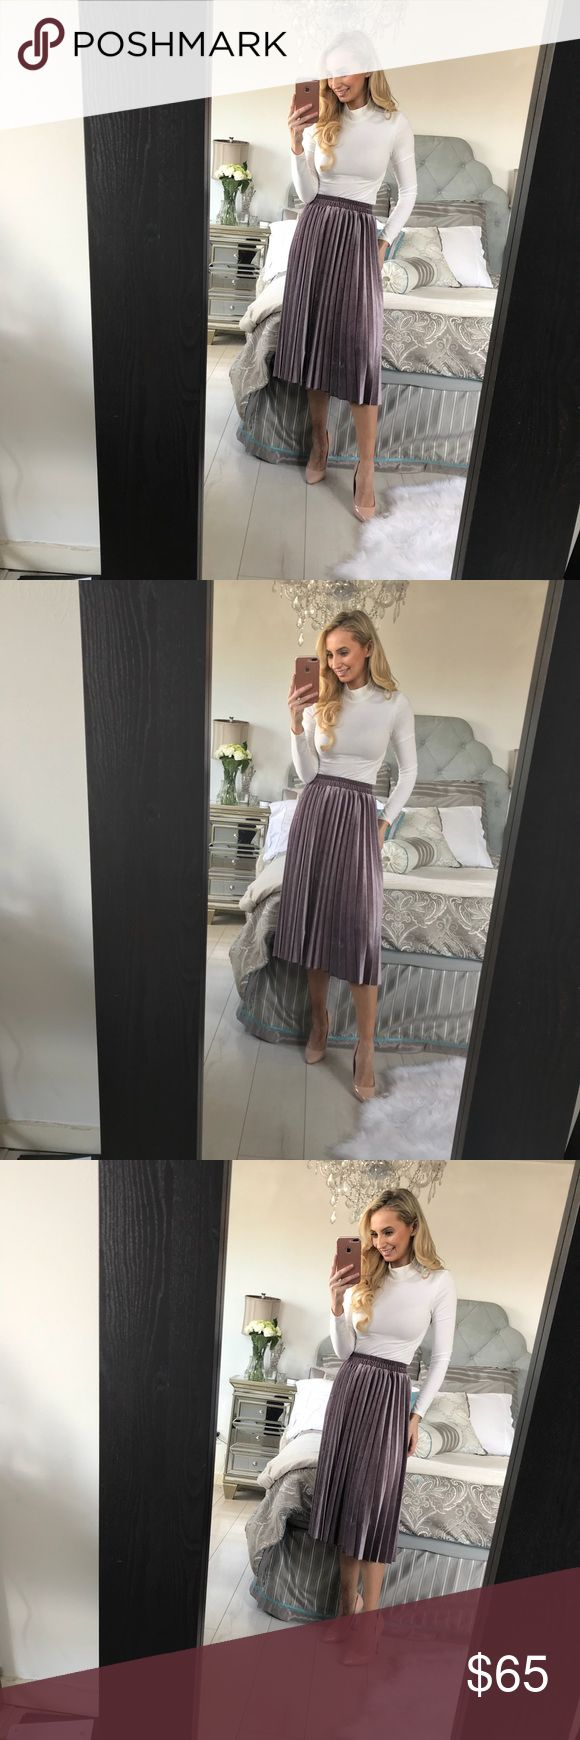 Light Purple Velvet Pleated Skirt This skirt is the fashion trend for 2018, A-line wonder boast, midi-length and perfect for Spring! Material: Cotton, Polyester Fabric: Velvet Waistline: Empire Size            Waist (Width)     Waist (Relaxed)   Skirt Length One Size    22                         36                       28.7 Little Pearls of Life Skirts Midi